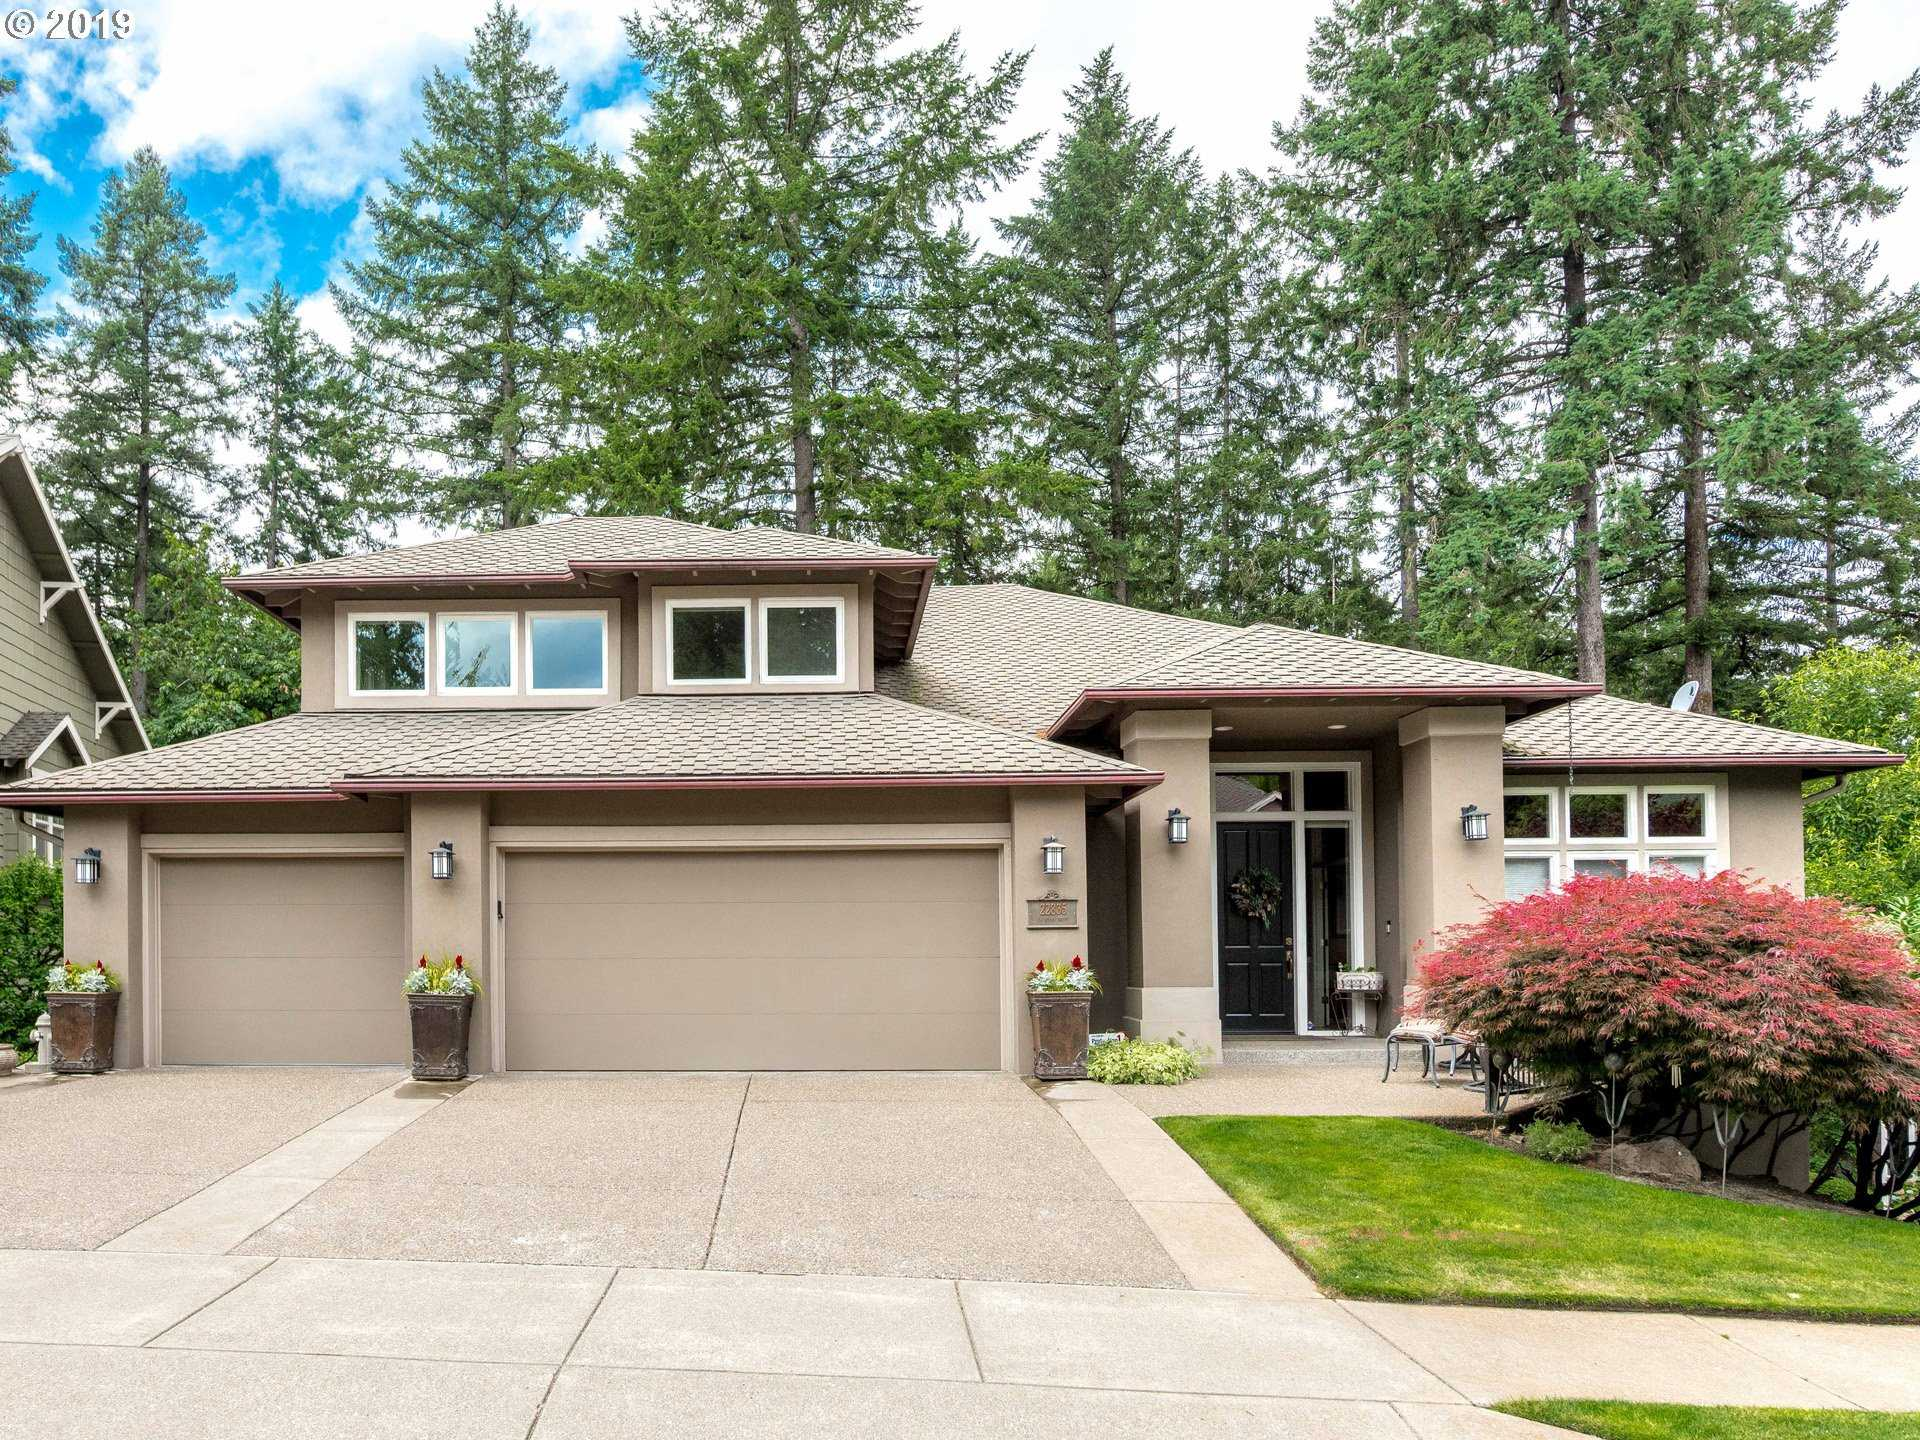 $869,000 - 4Br/3Ba -  for Sale in Victoria Woods, Tualatin